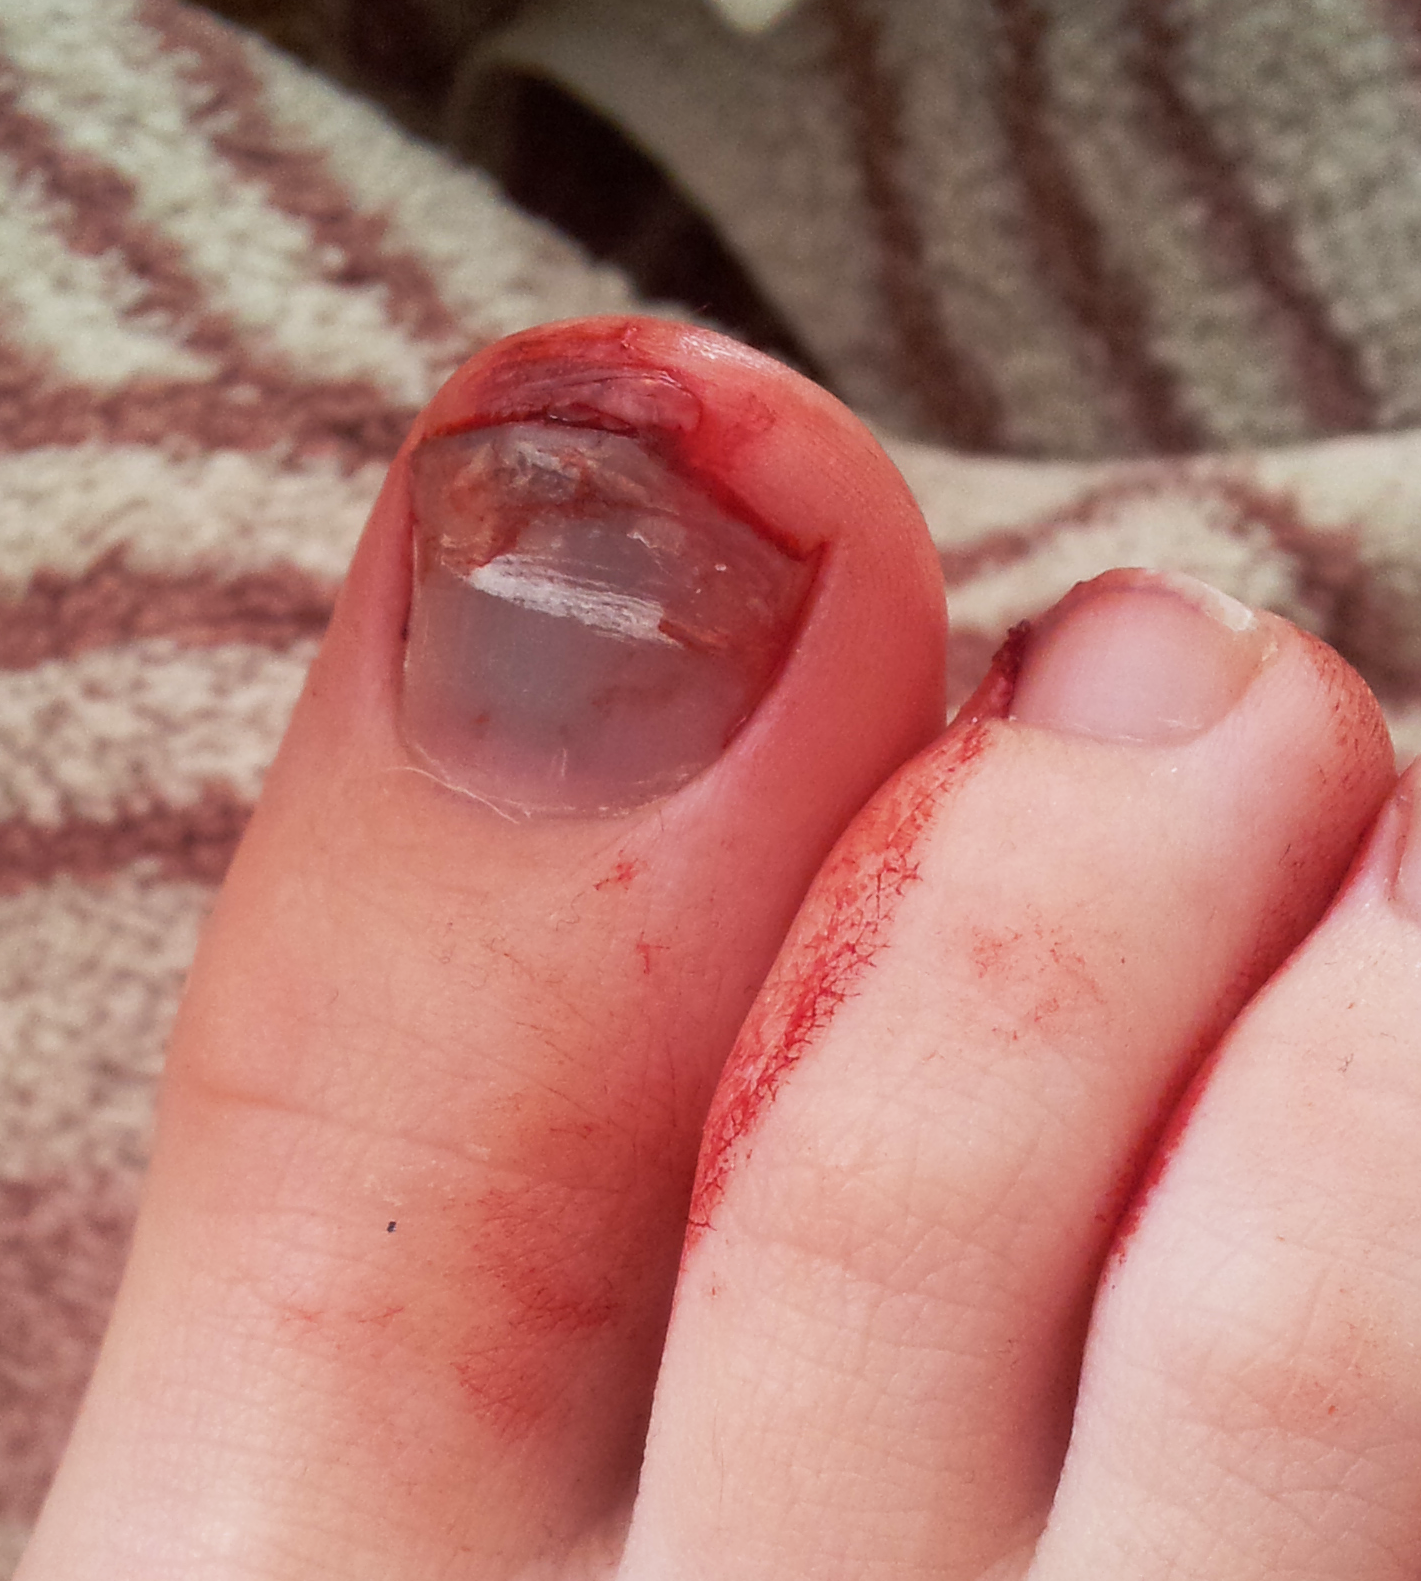 Red Lump On Dog Toe